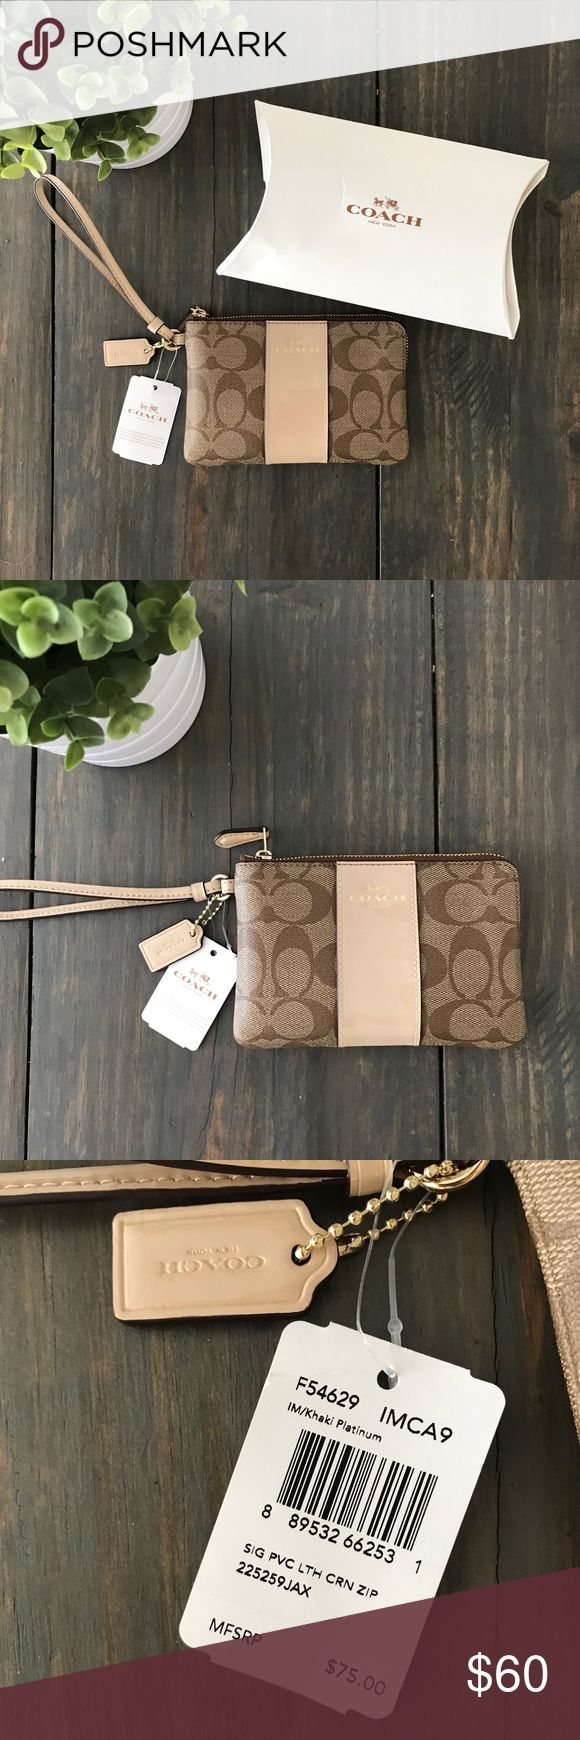 NWT! Coach Clutch Wristlet NWT! Authentic. Never used. Neutral color. Comes with original box, care instructions, and protective tissue paper inside. Coach Bags Clutches & Wristlets